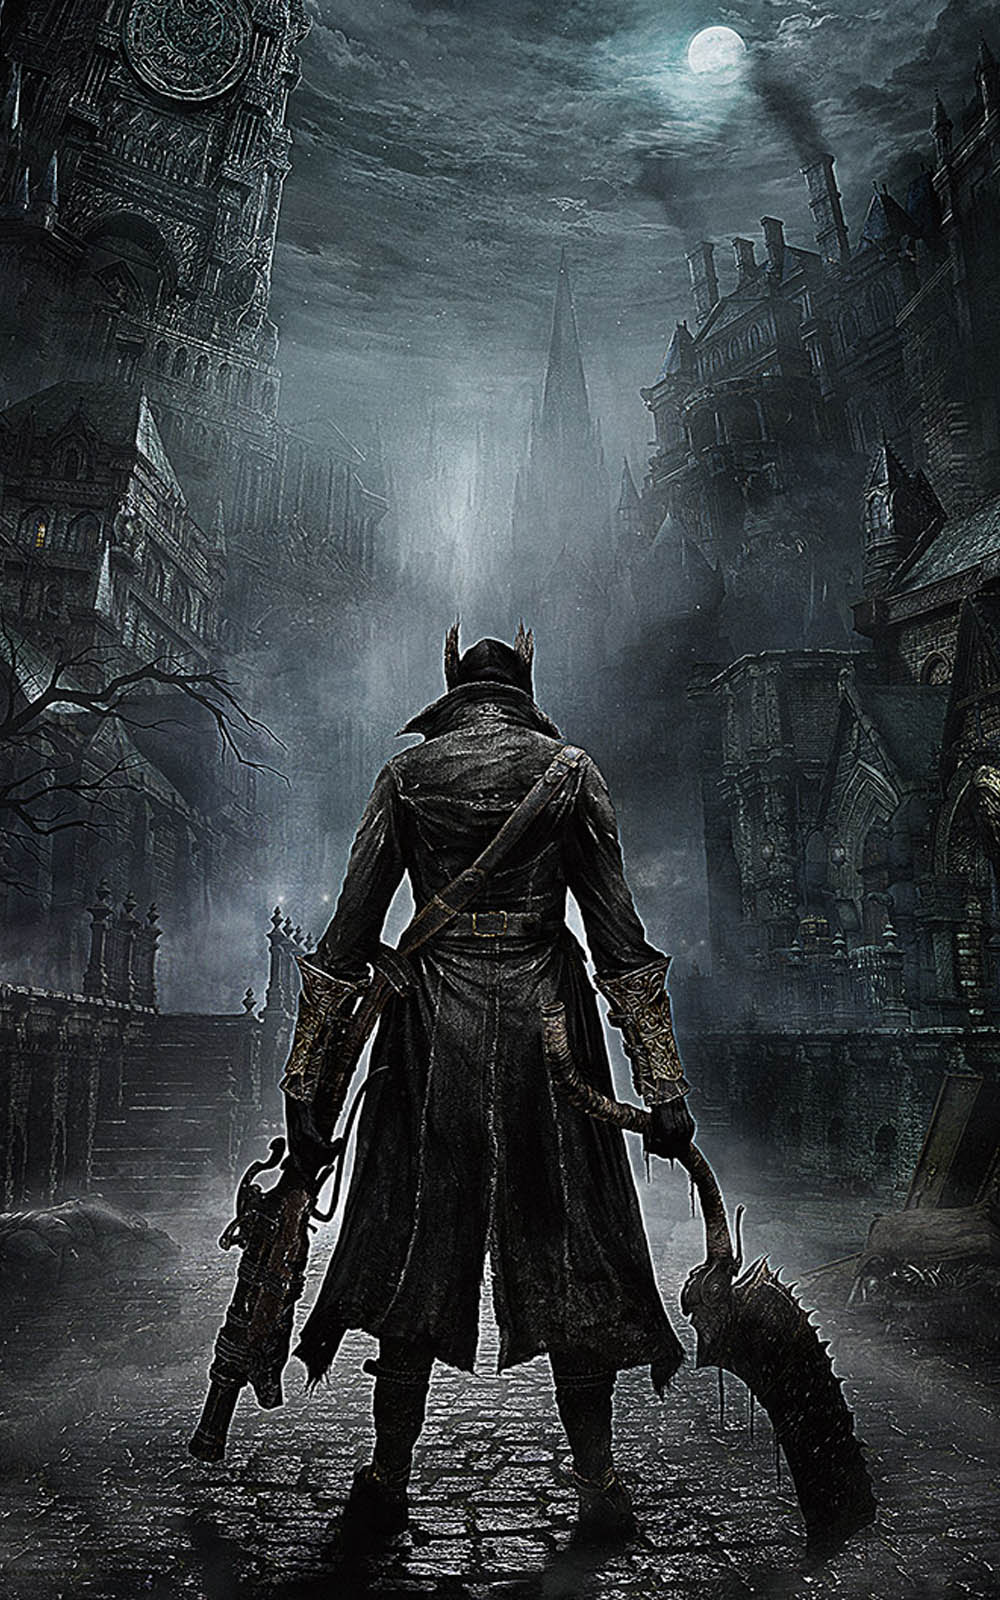 Bloodborne - Download Free HD Mobile Wallpapers